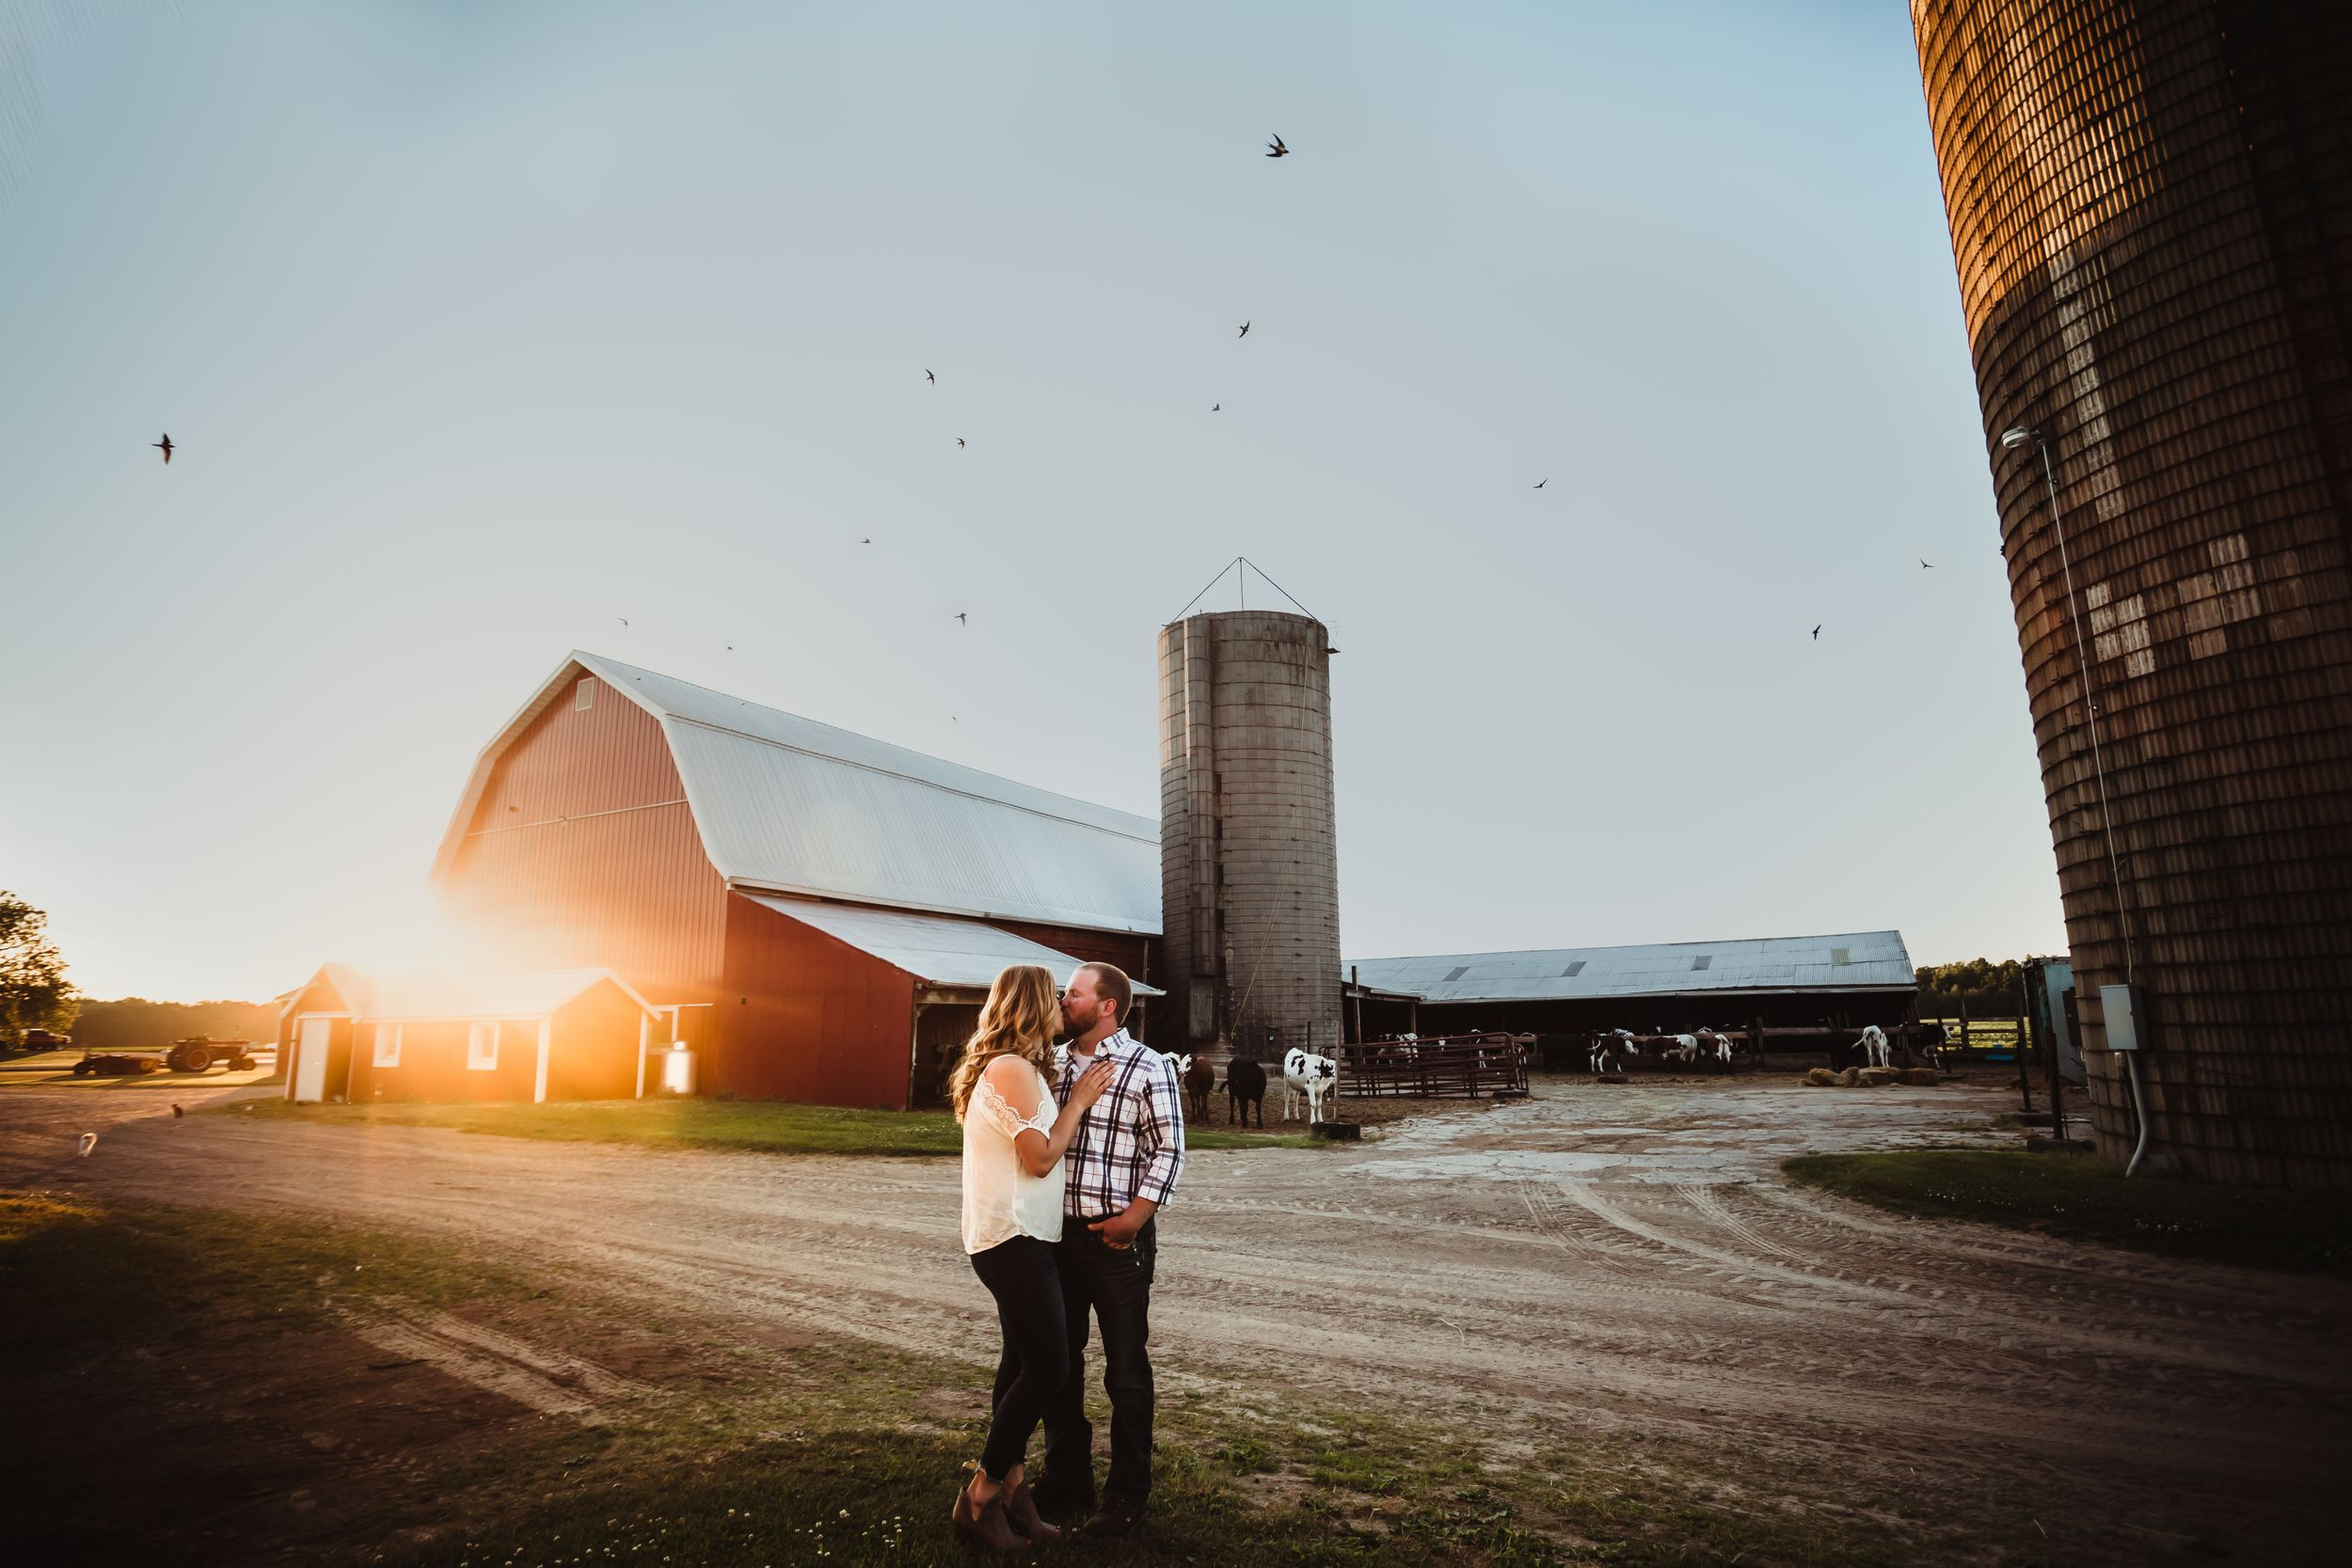 A wide shot of a man and woman kissing with a barn, cows, and sunset behind them. Birds are in the air.